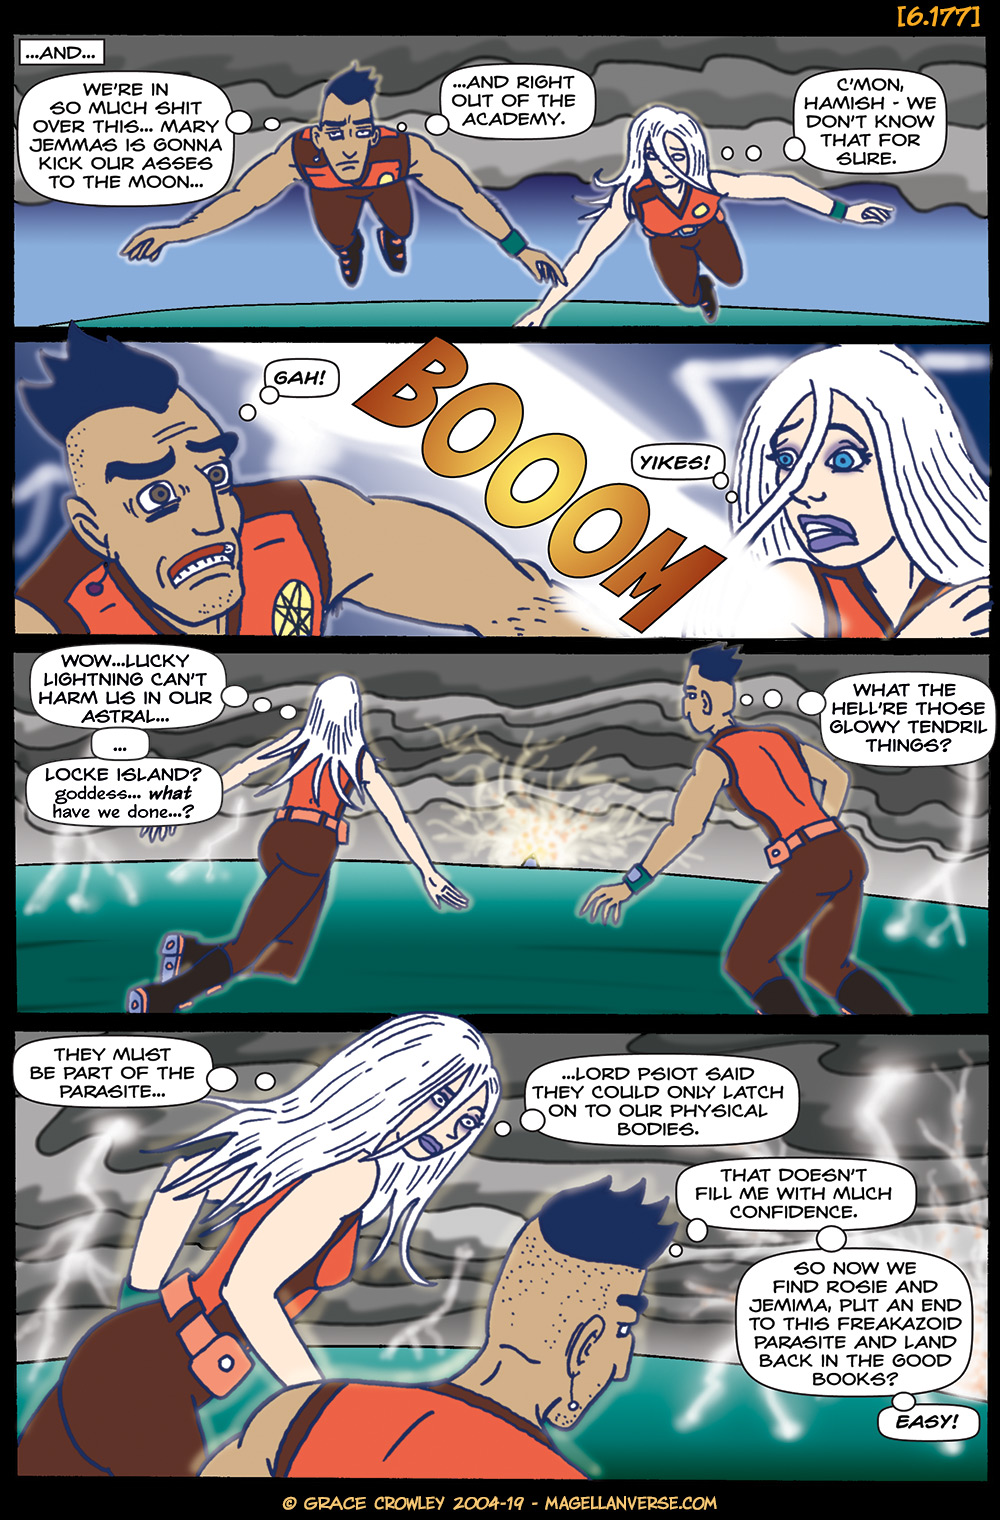 Page 6.177